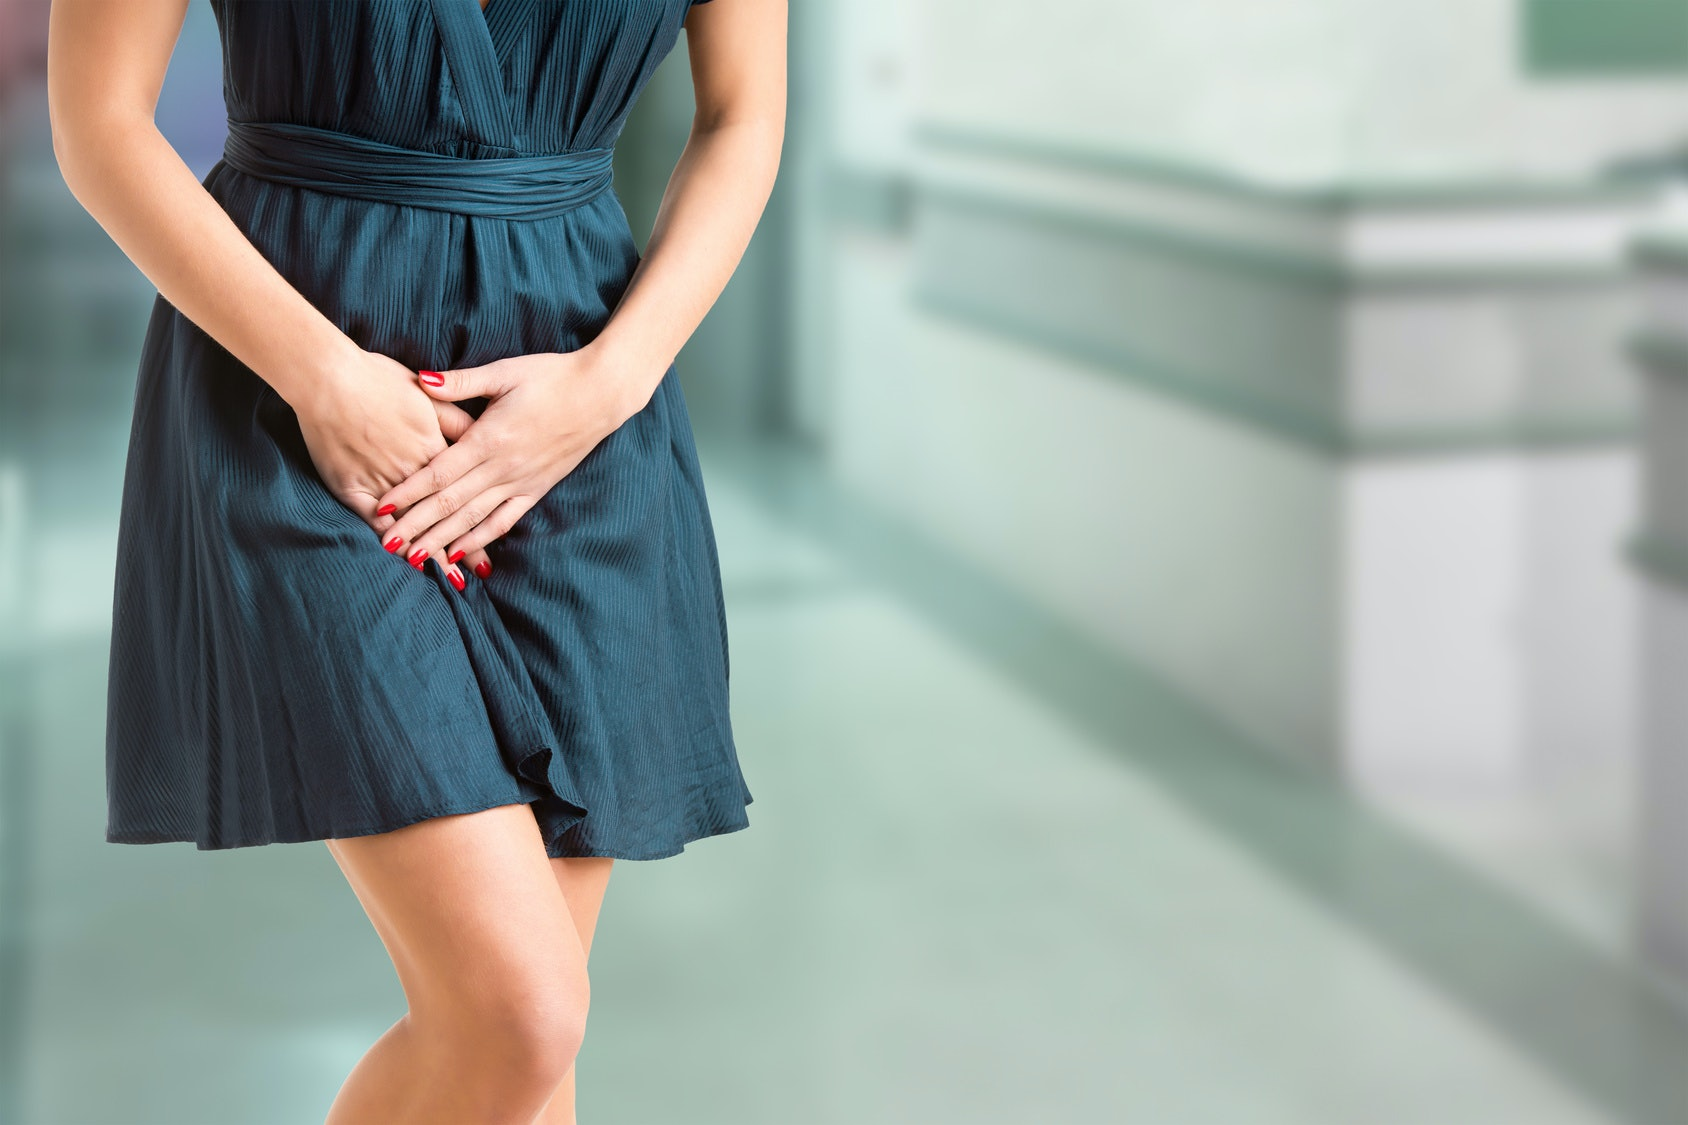 5 Fascinating Things That Happen When You Hold In Your Pee Too Long